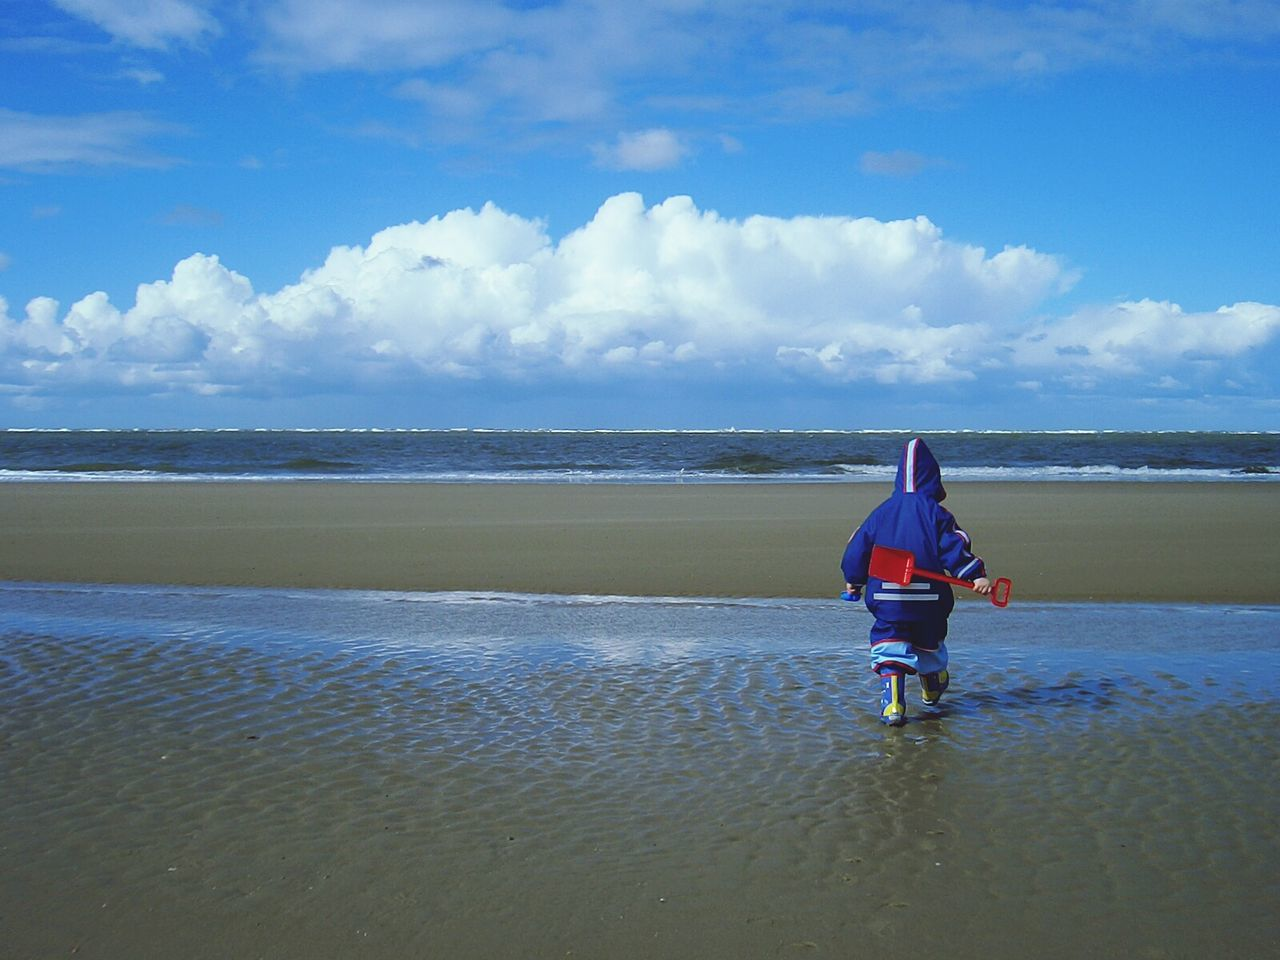 People Of The Oceans Beach Life Beach Photography Beach Time Working Hard Child At The Beach Children's Portraits Children Playing Oceanside Ocean Beach Ocean And Sky Playing In The Sand Playing At The Beach Playing At The Ocean Having Fun :) Capture The Moment People And Places Langeoog North Sea Insel Langeoog Feel The Journey Original Experiences waiting game Adventure Club Miles Away Lieblingsteil